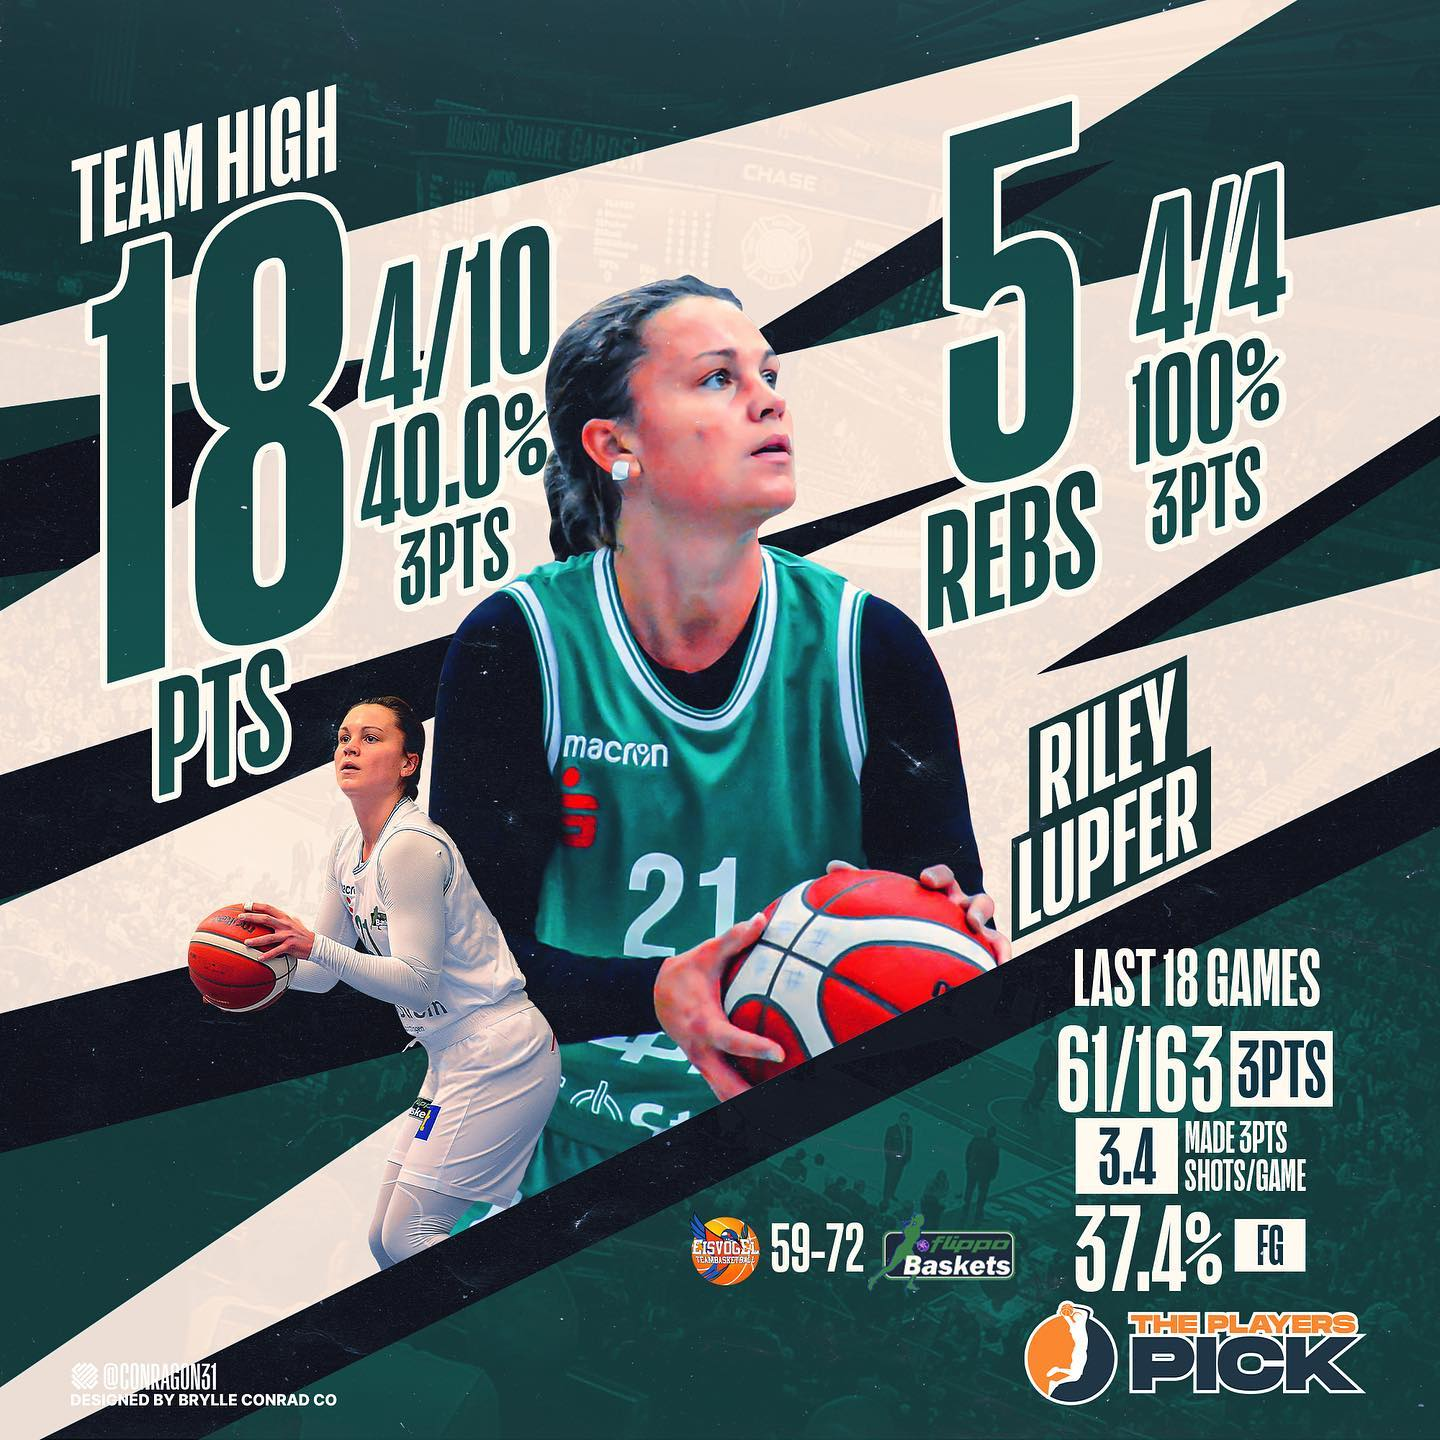 Riley Lupfer led Gottingen to 4th place with 18 points vs Freiburg!